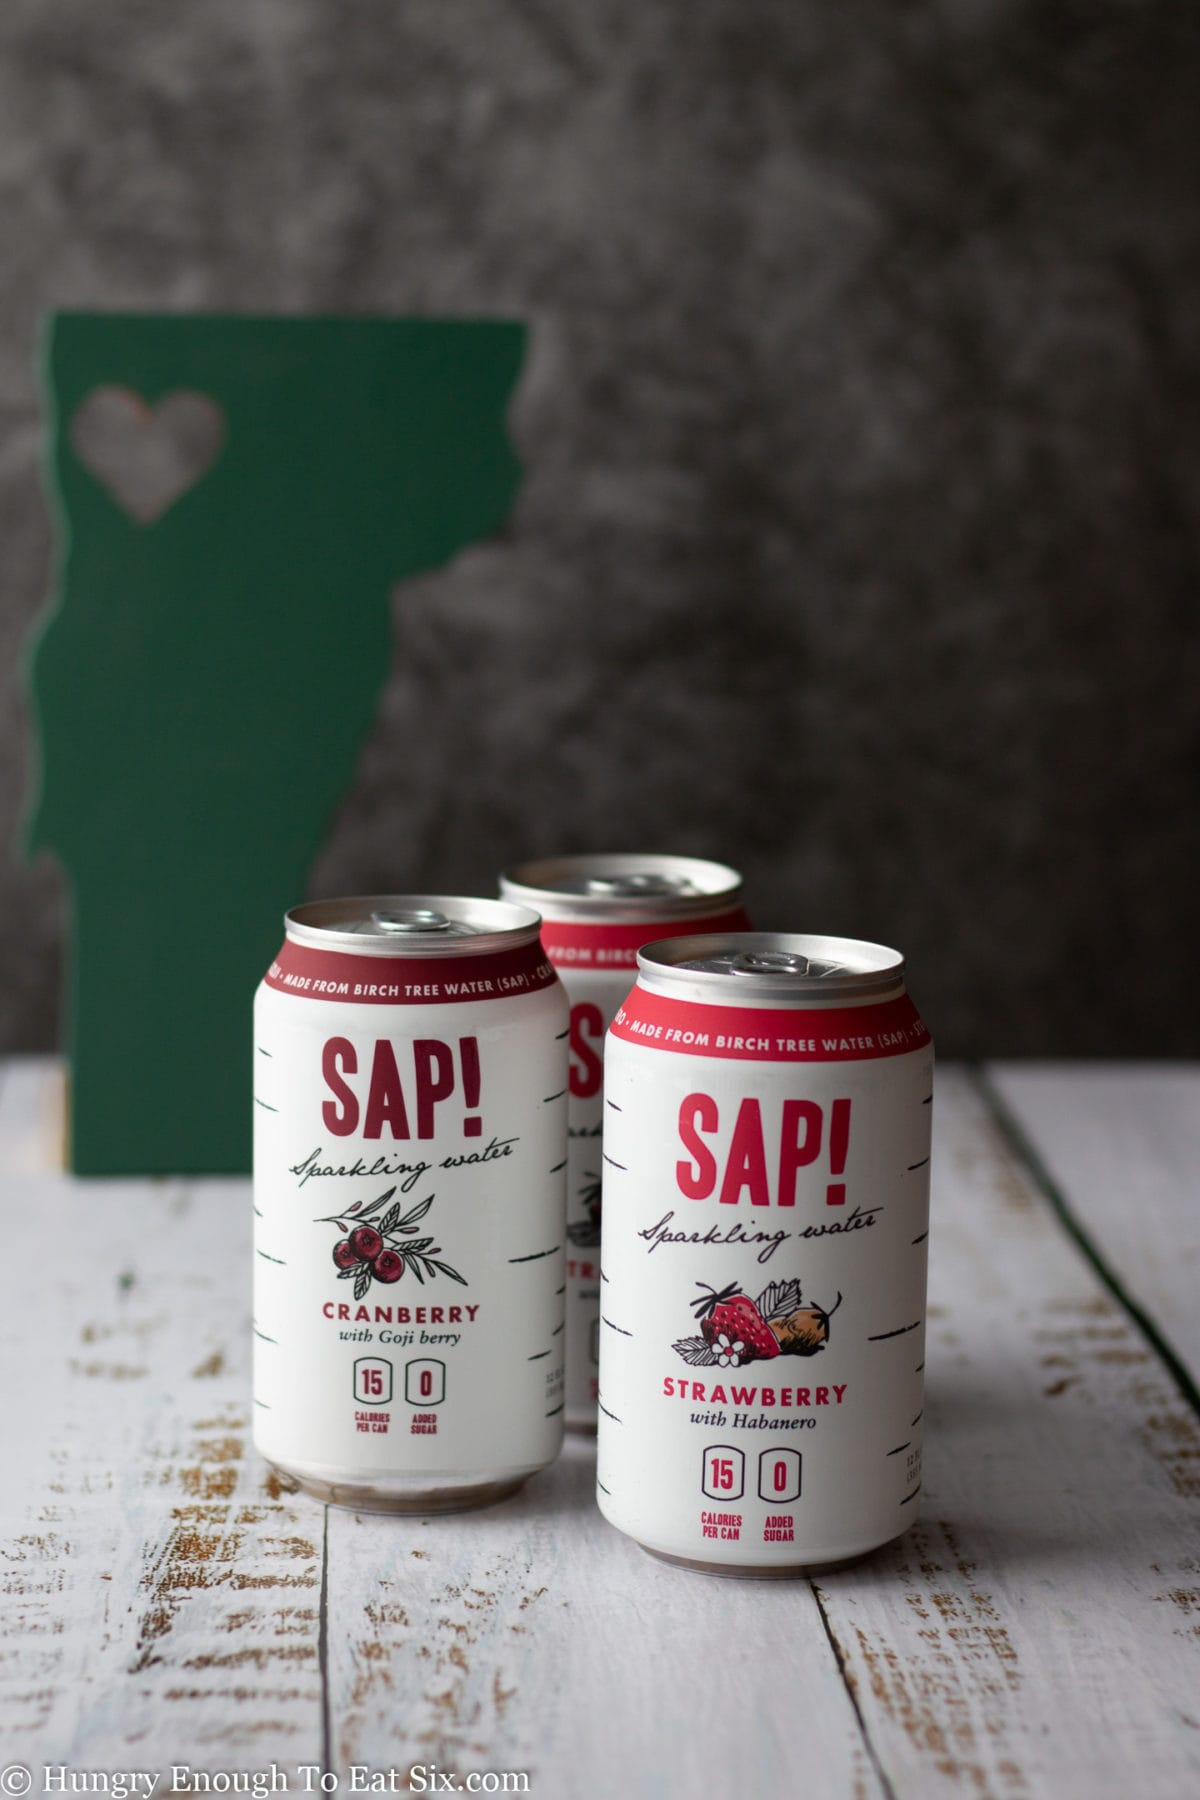 Cans of Sap! sparkling water with an image of the state of Vermont in background